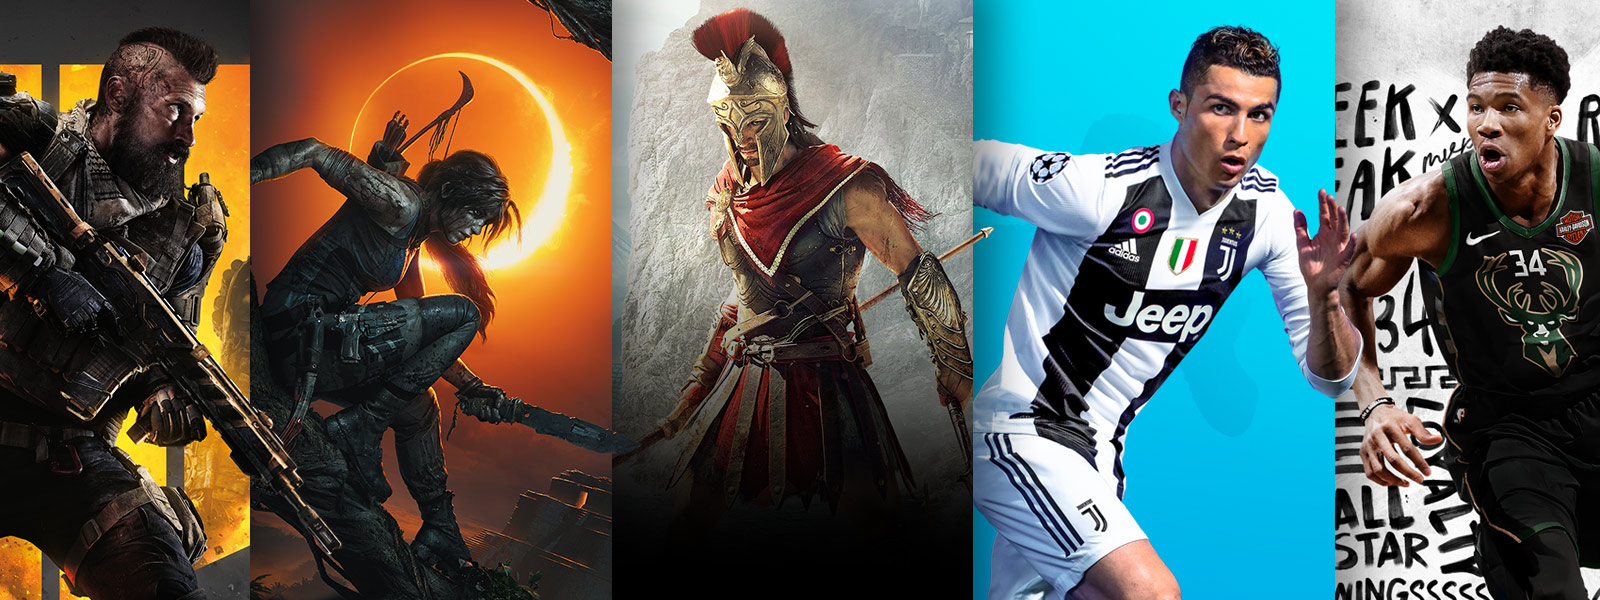 Call of Duty Black Ops 4, Shadow of the Tomb Raider, Assassins Creed Odyssey, FIFA 18 and NBA 2K19 game art